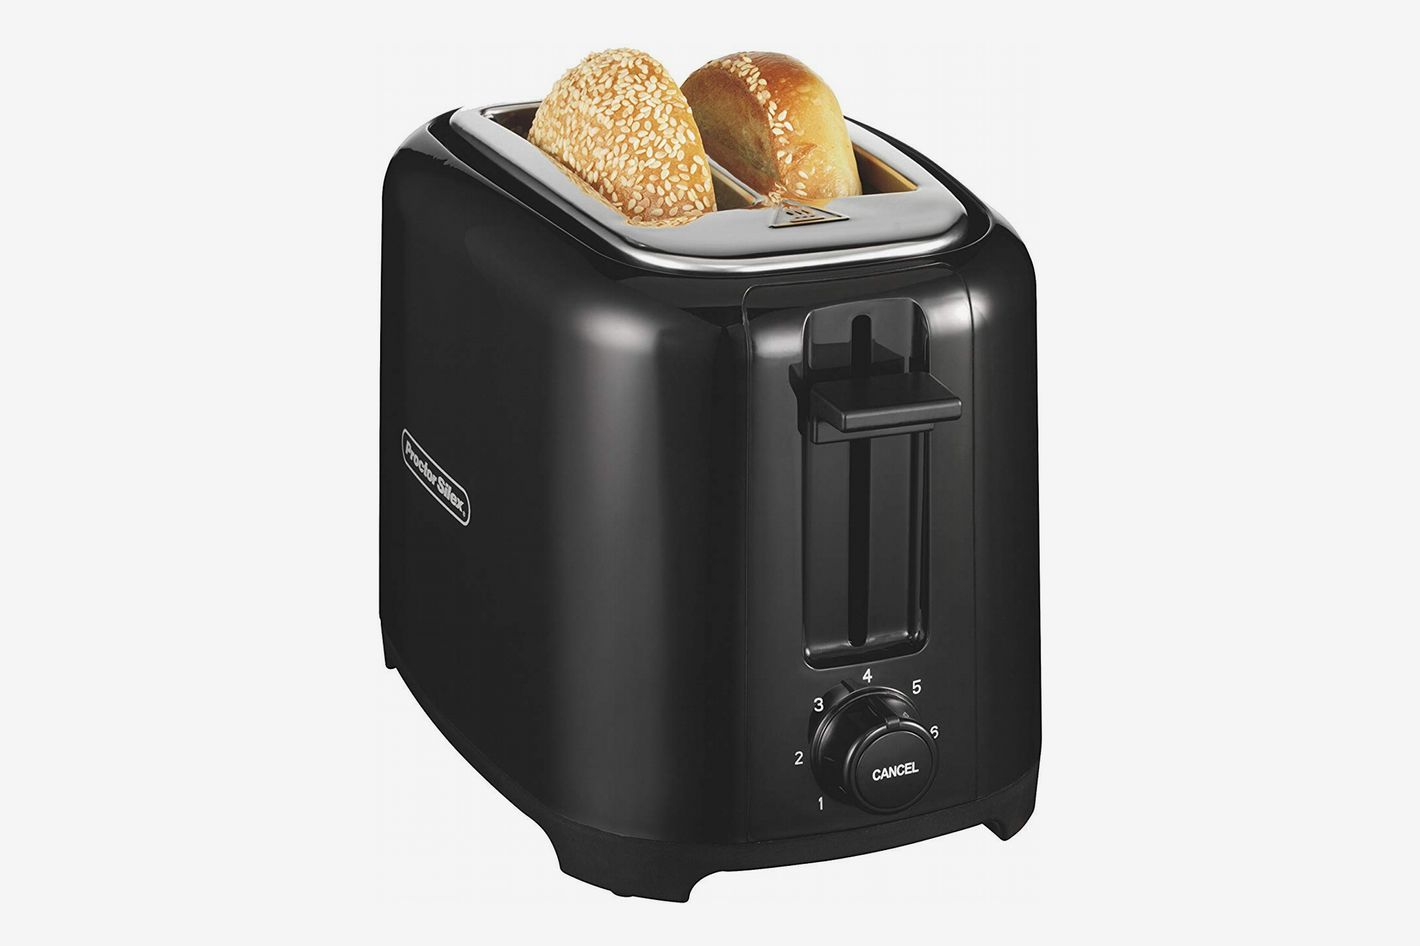 Proctor Silex 22215 Toaster with Wide Slots & Toast Boost, 2-Slice, Black